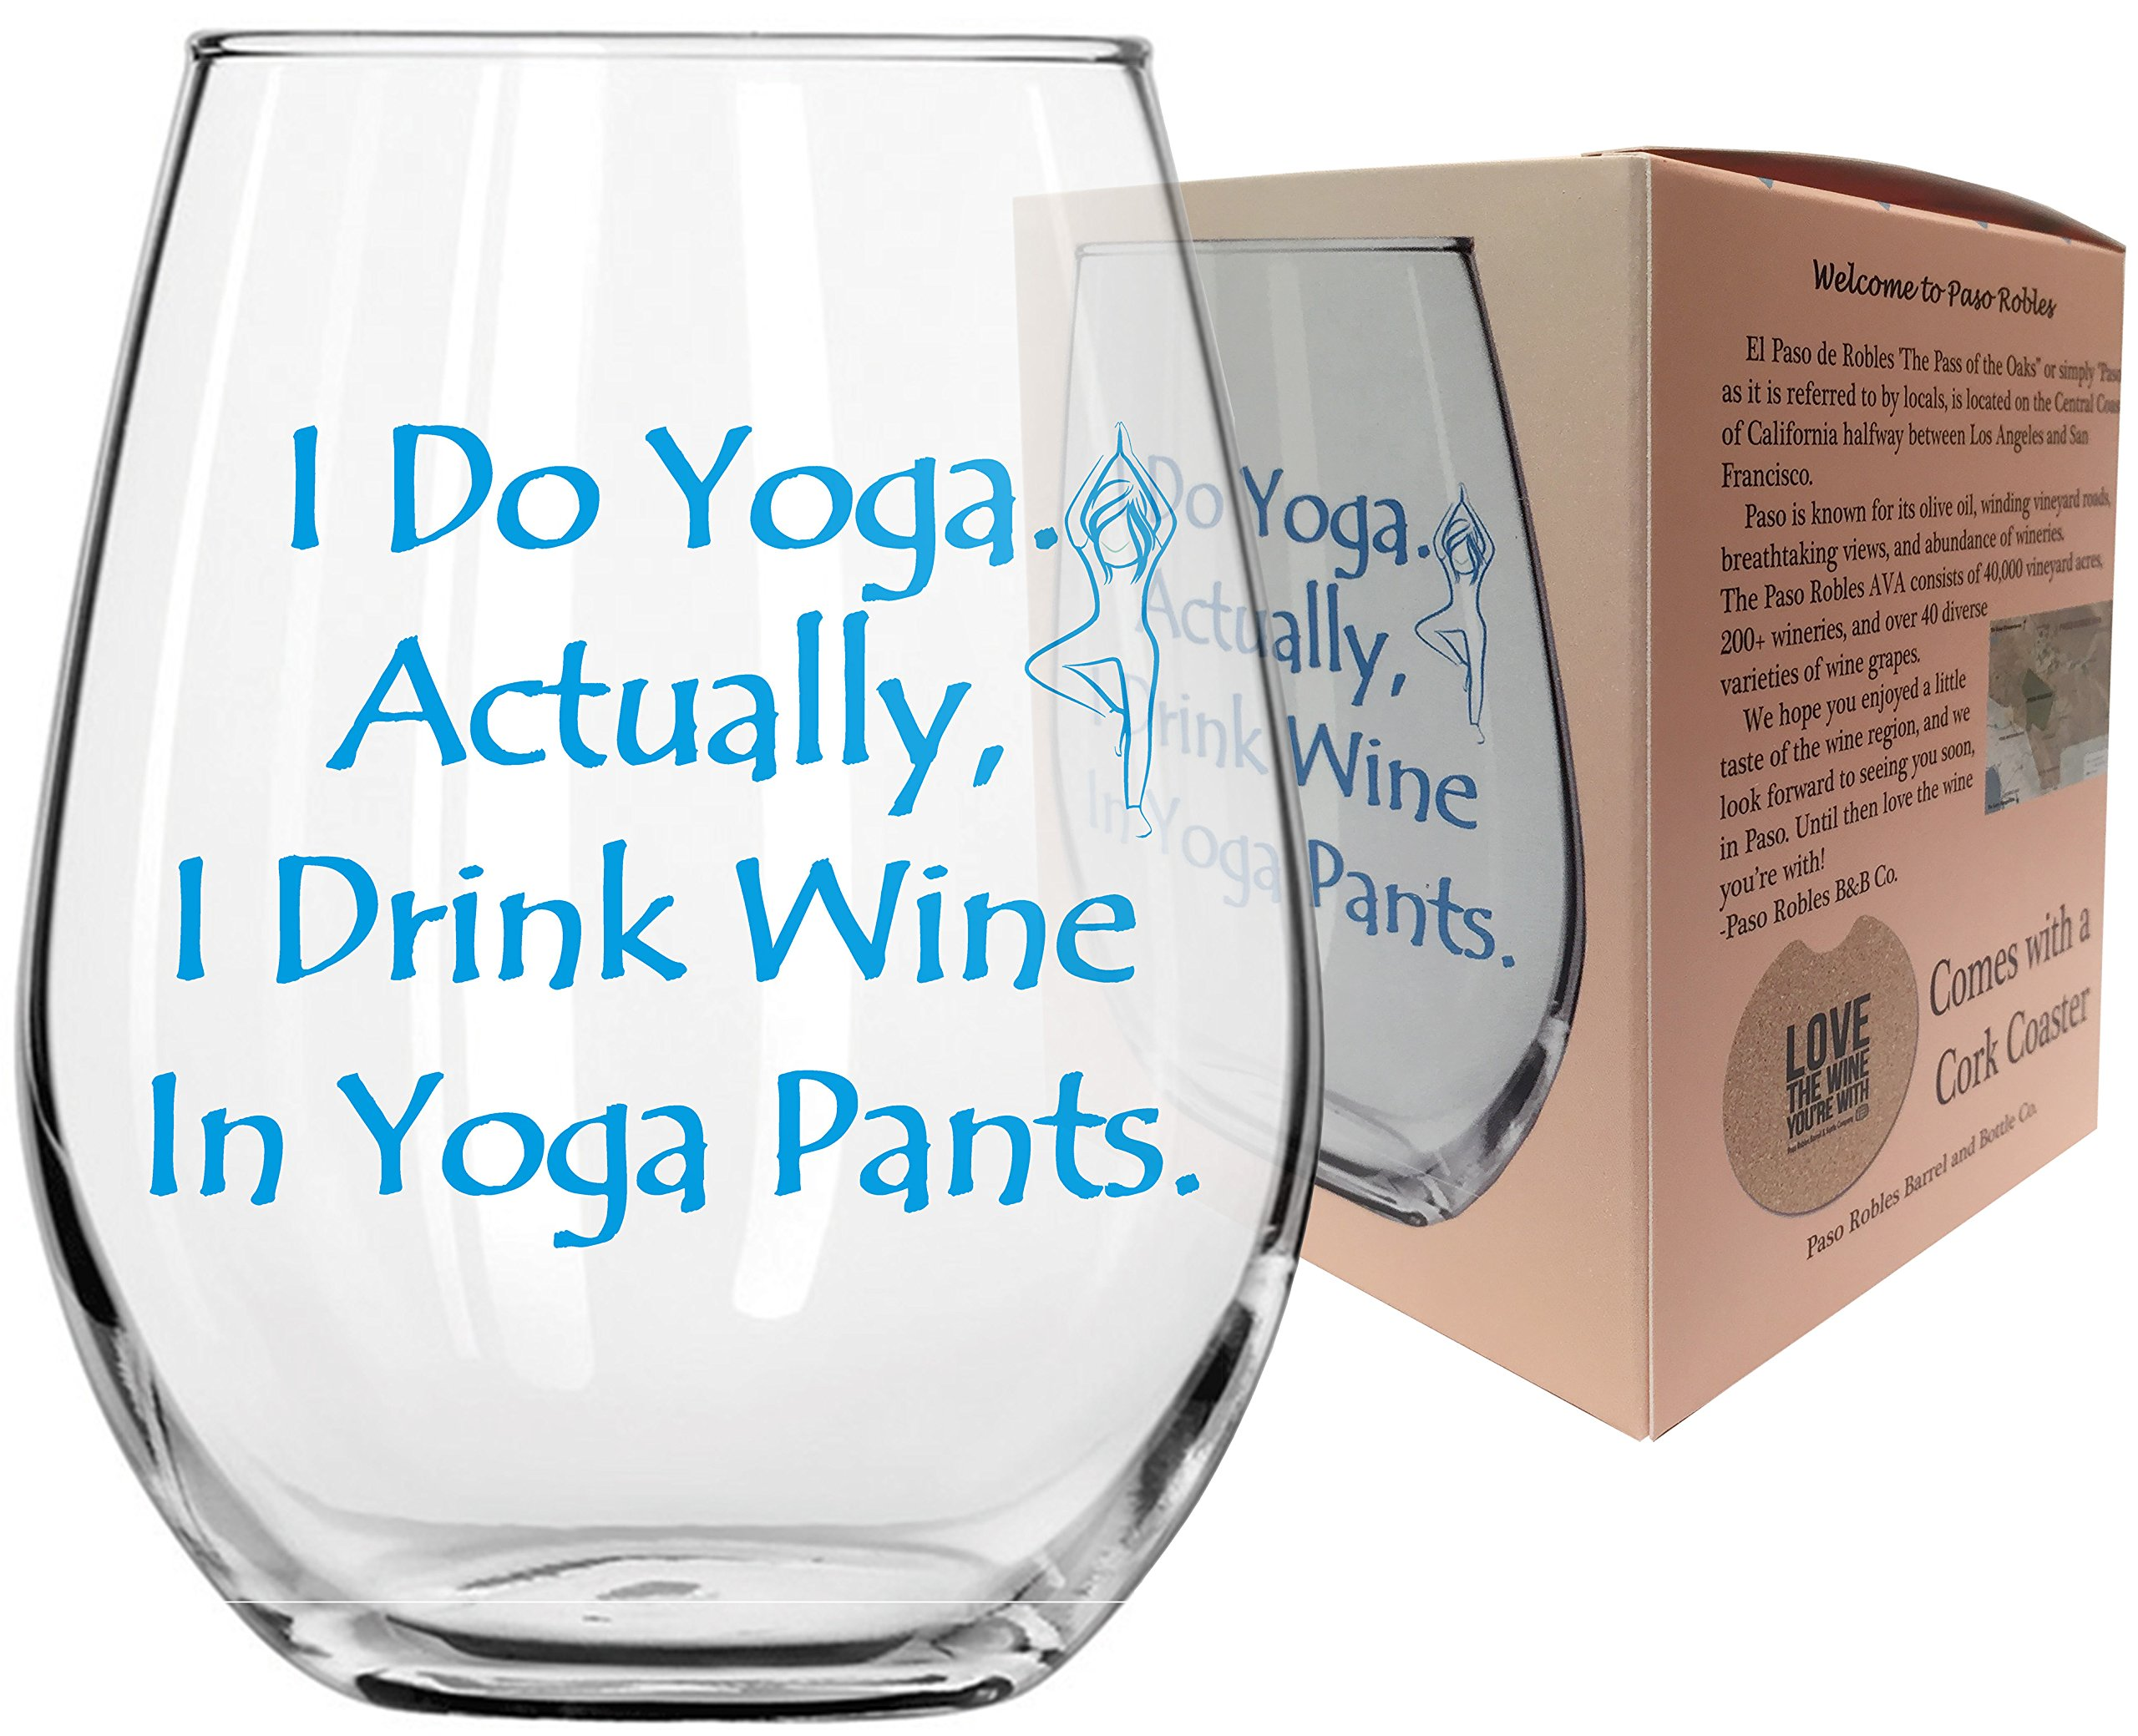 Funny Yoga Wine Glass with sayings - I USED to do YOGA Wine Glass - I Drink wine in YOGA Pants - 17oz ounce Stemless wine glass w/Coaster - Gift Box (I Drink Wine in Yoga Pants)